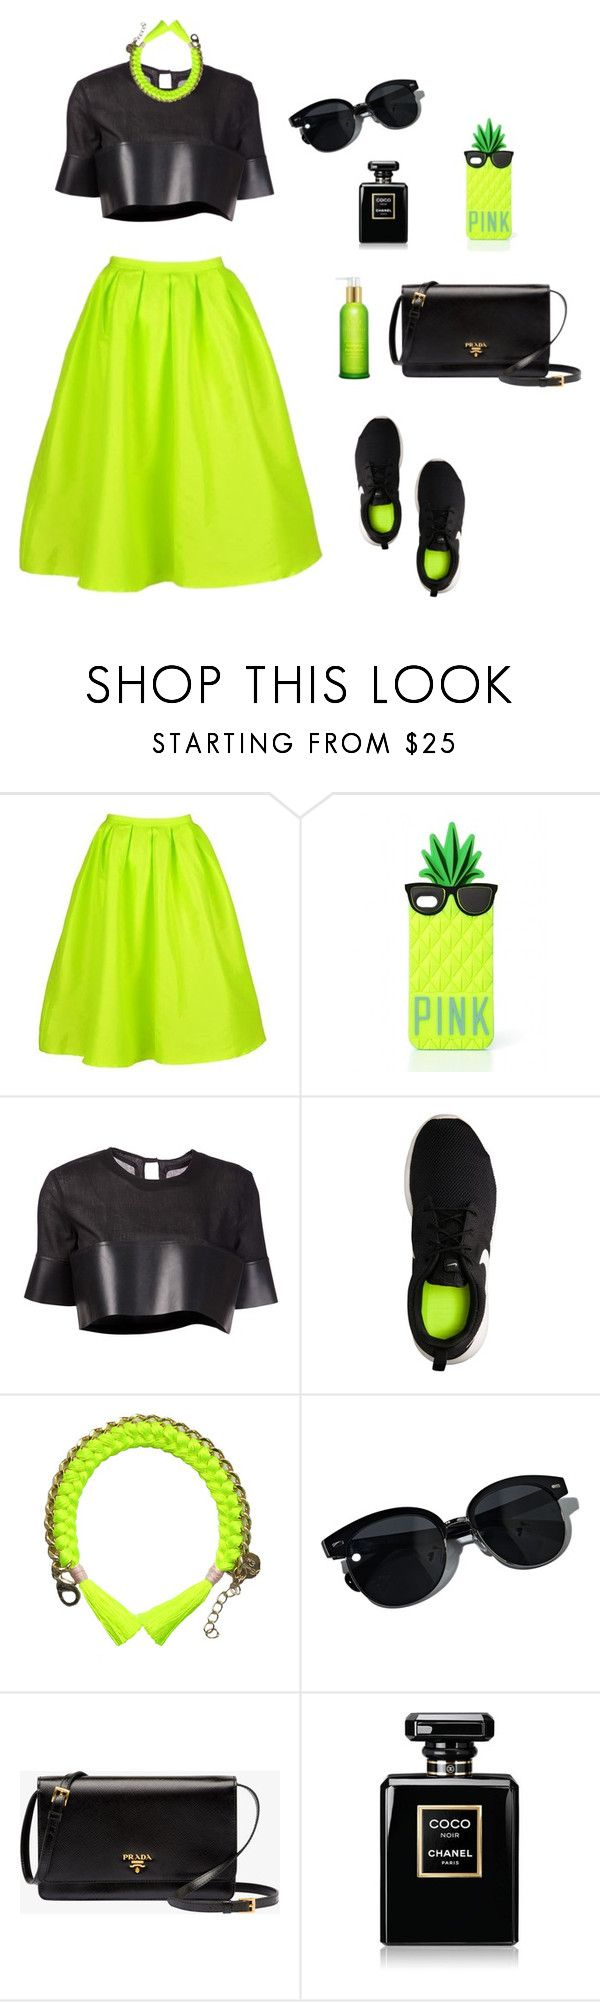 """""""L - Lime"""" by galia-ivanova ❤ liked on Polyvore featuring Victoria's Secret, Phoebe English, NIKE, Oliver Peoples, Prada, Chanel and Tata Harper"""